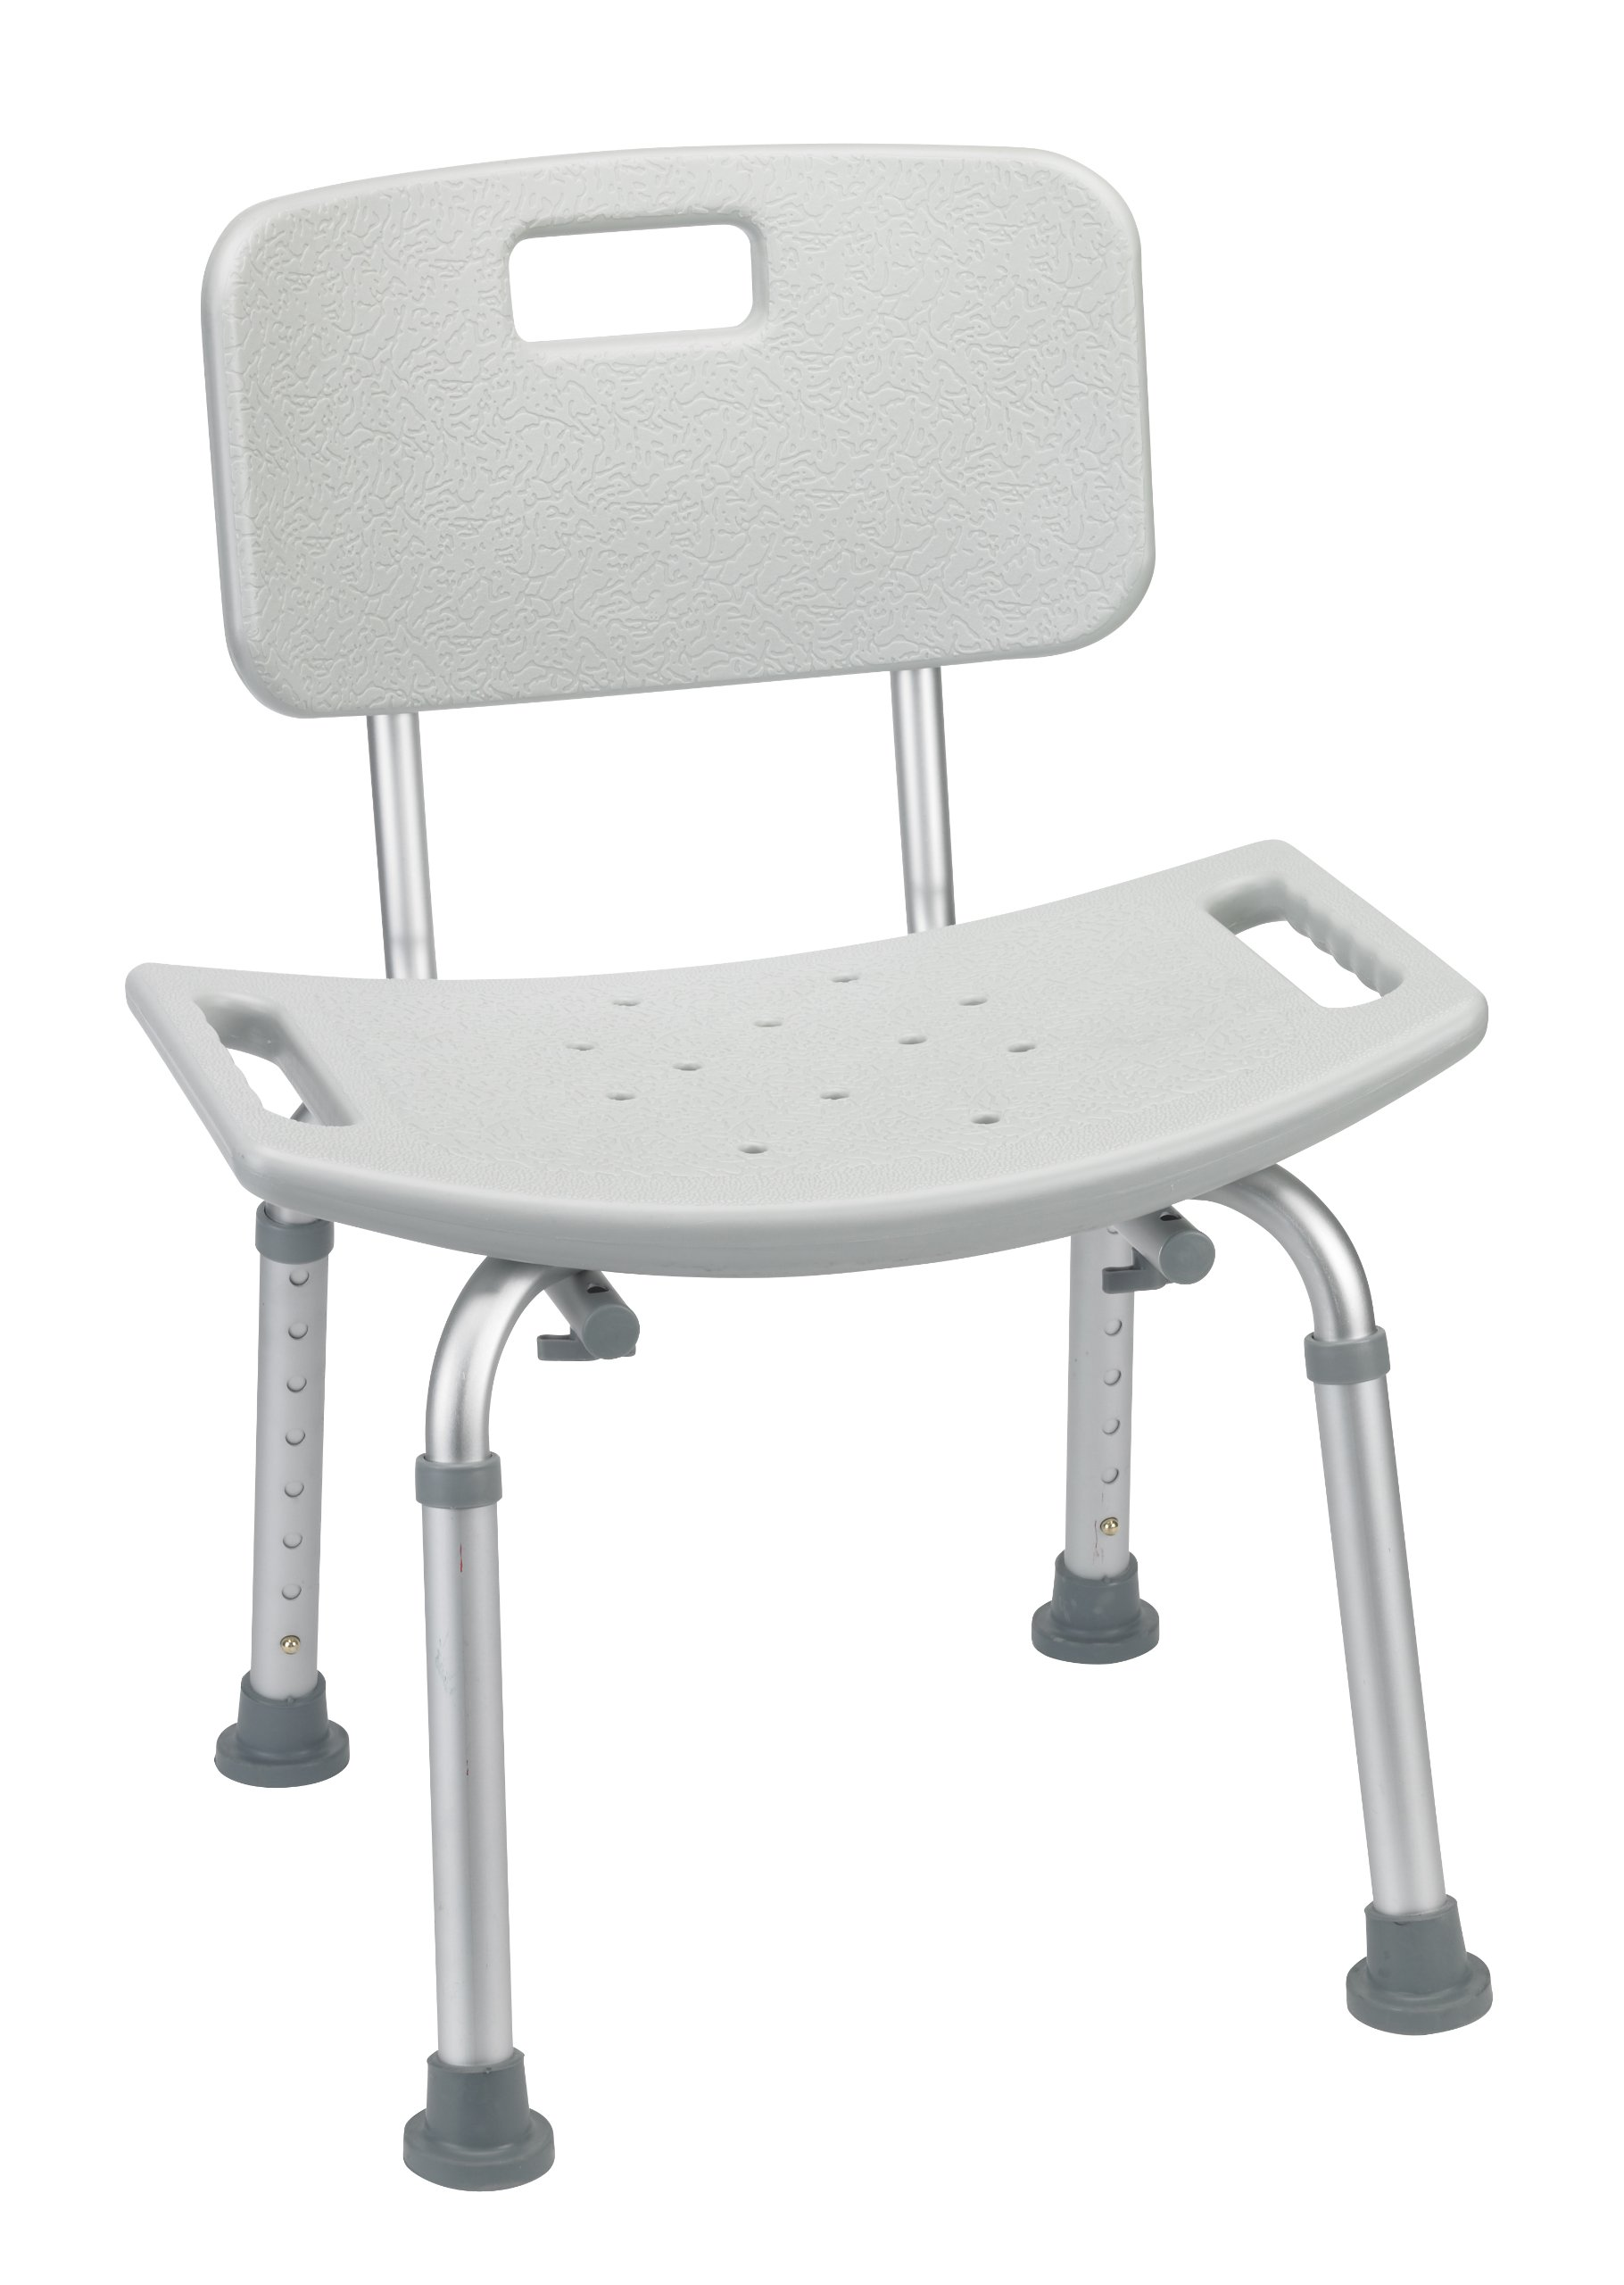 Drive Medical Bathroom Safety Shower Tub Bench Chair with Back, Grey by Drive Medical